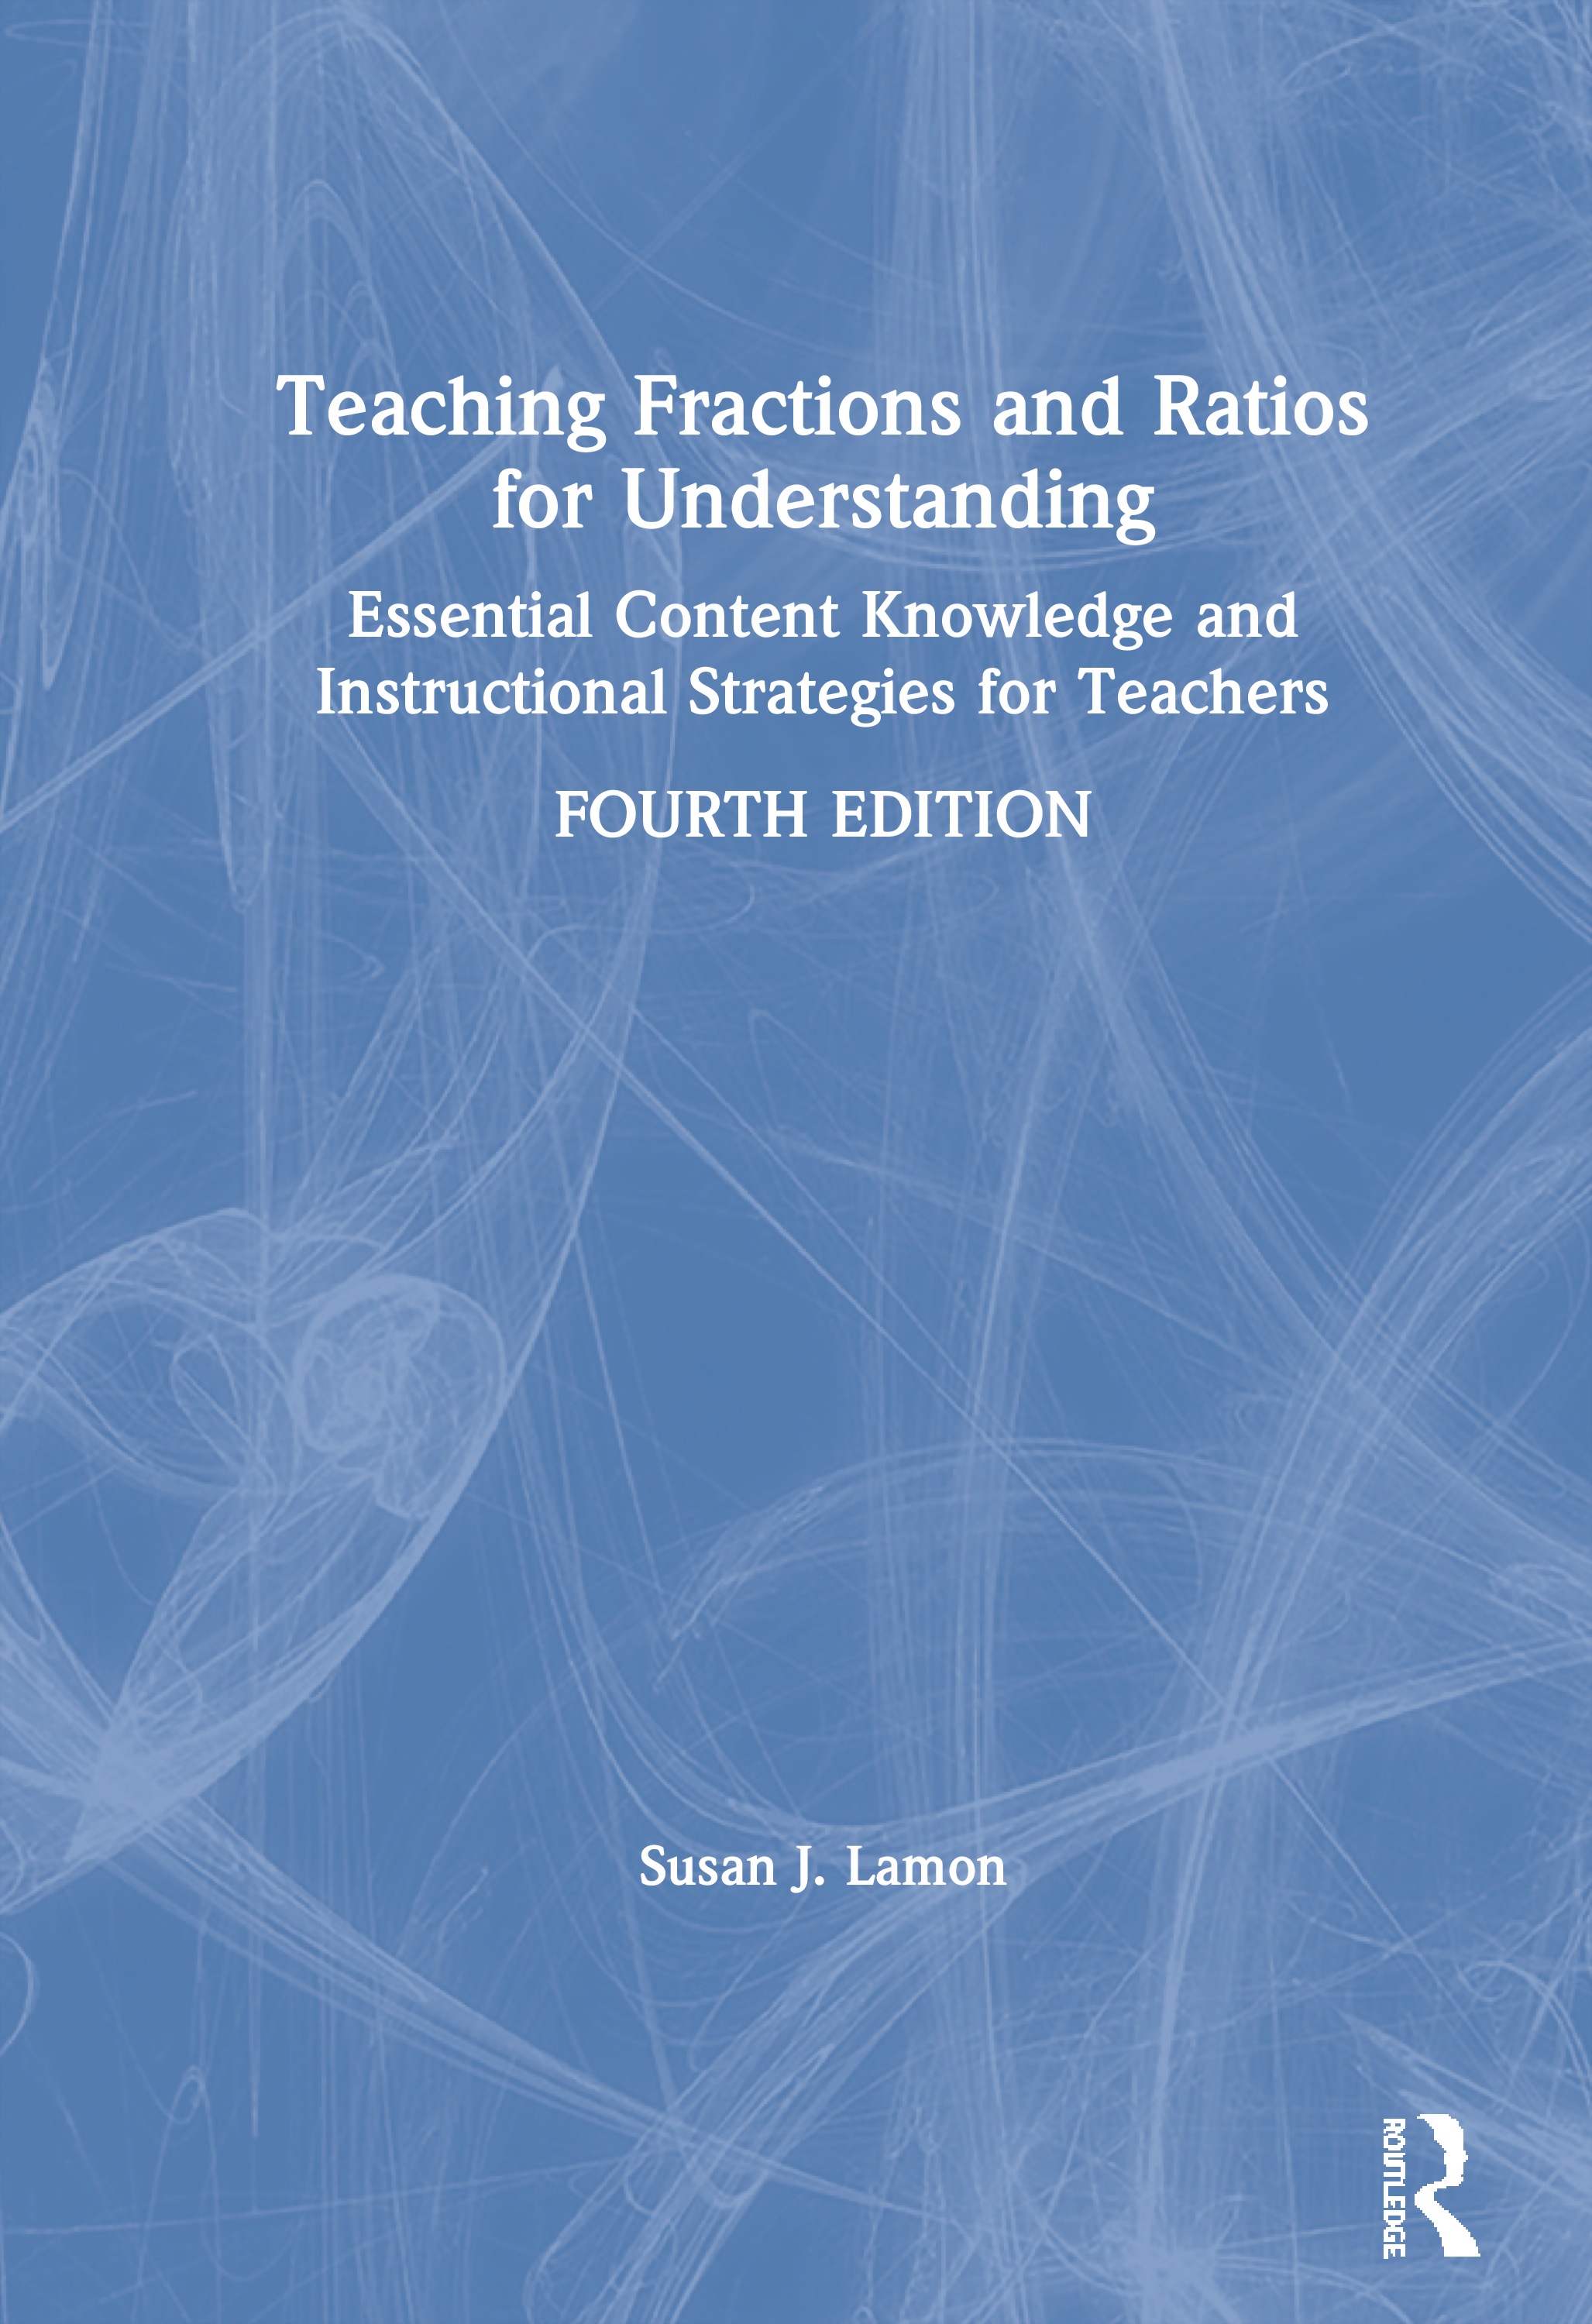 Teaching Fractions and Ratios for Understanding: Essential Content Knowledge and Instructional Strategies for Teachers, 4th Edition (Paperback) book cover